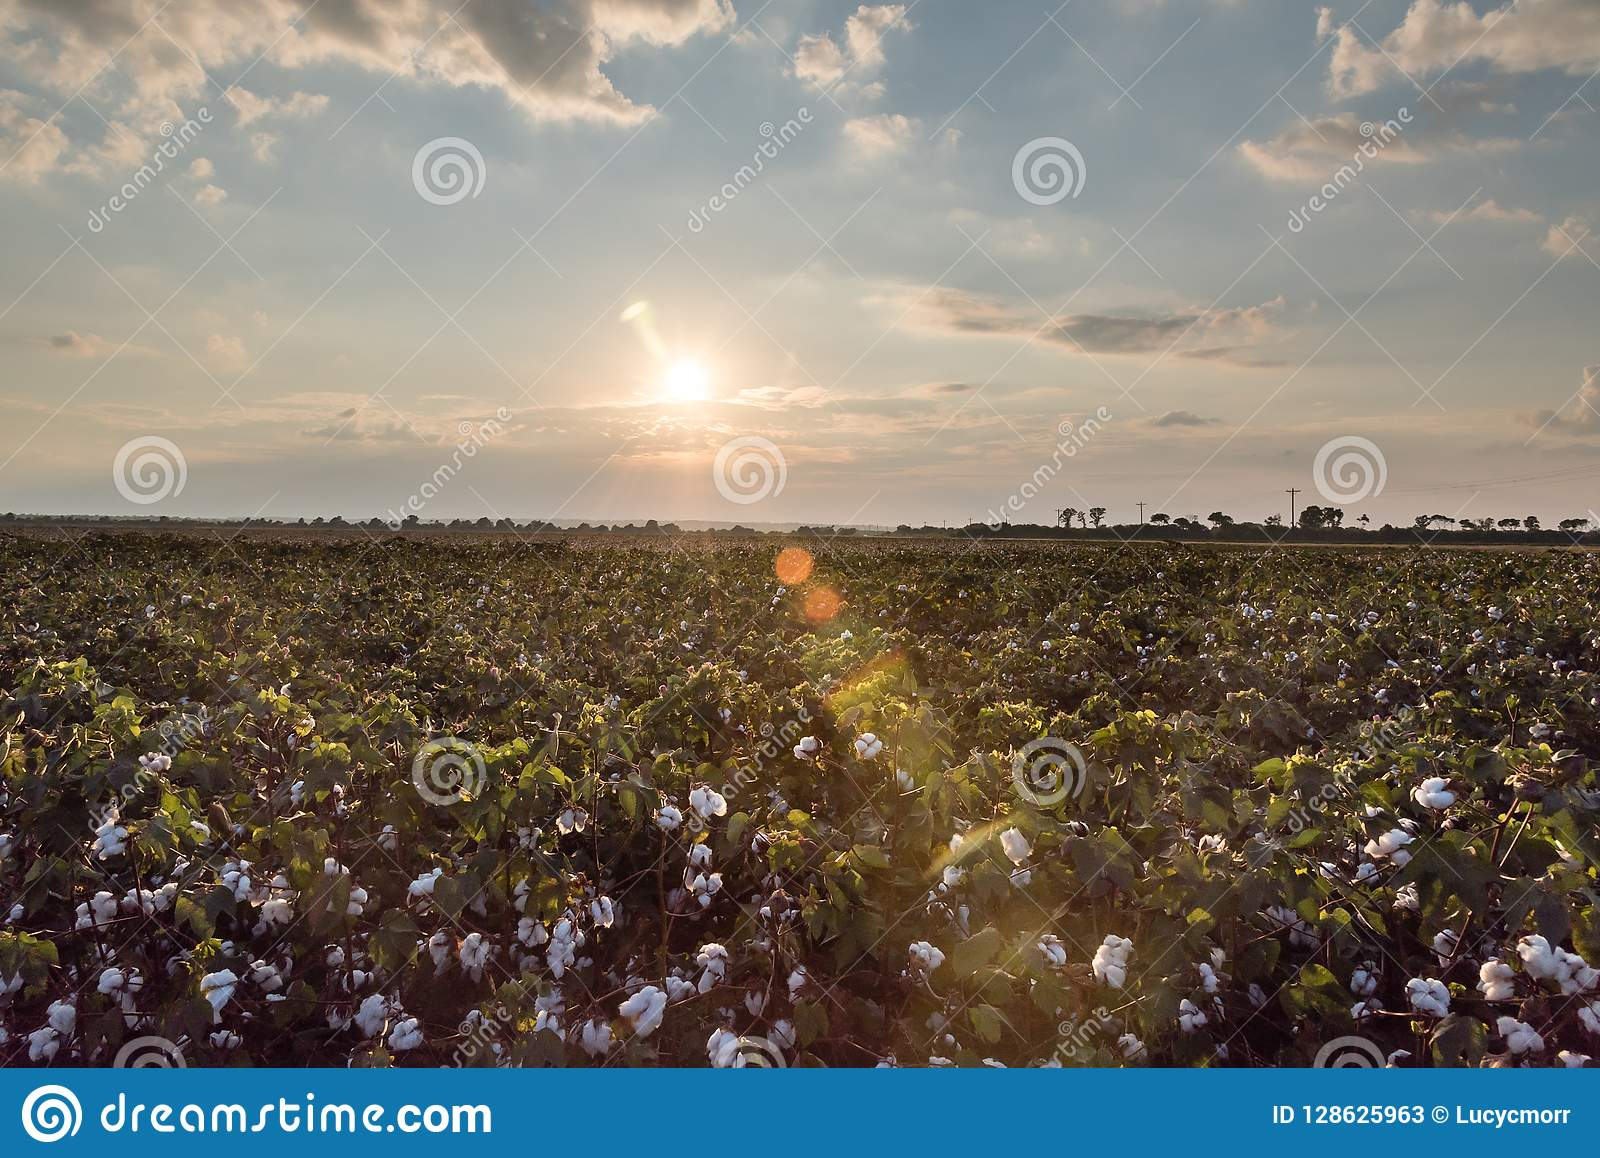 Evening Sun and Sunflares over Green Cotton Field